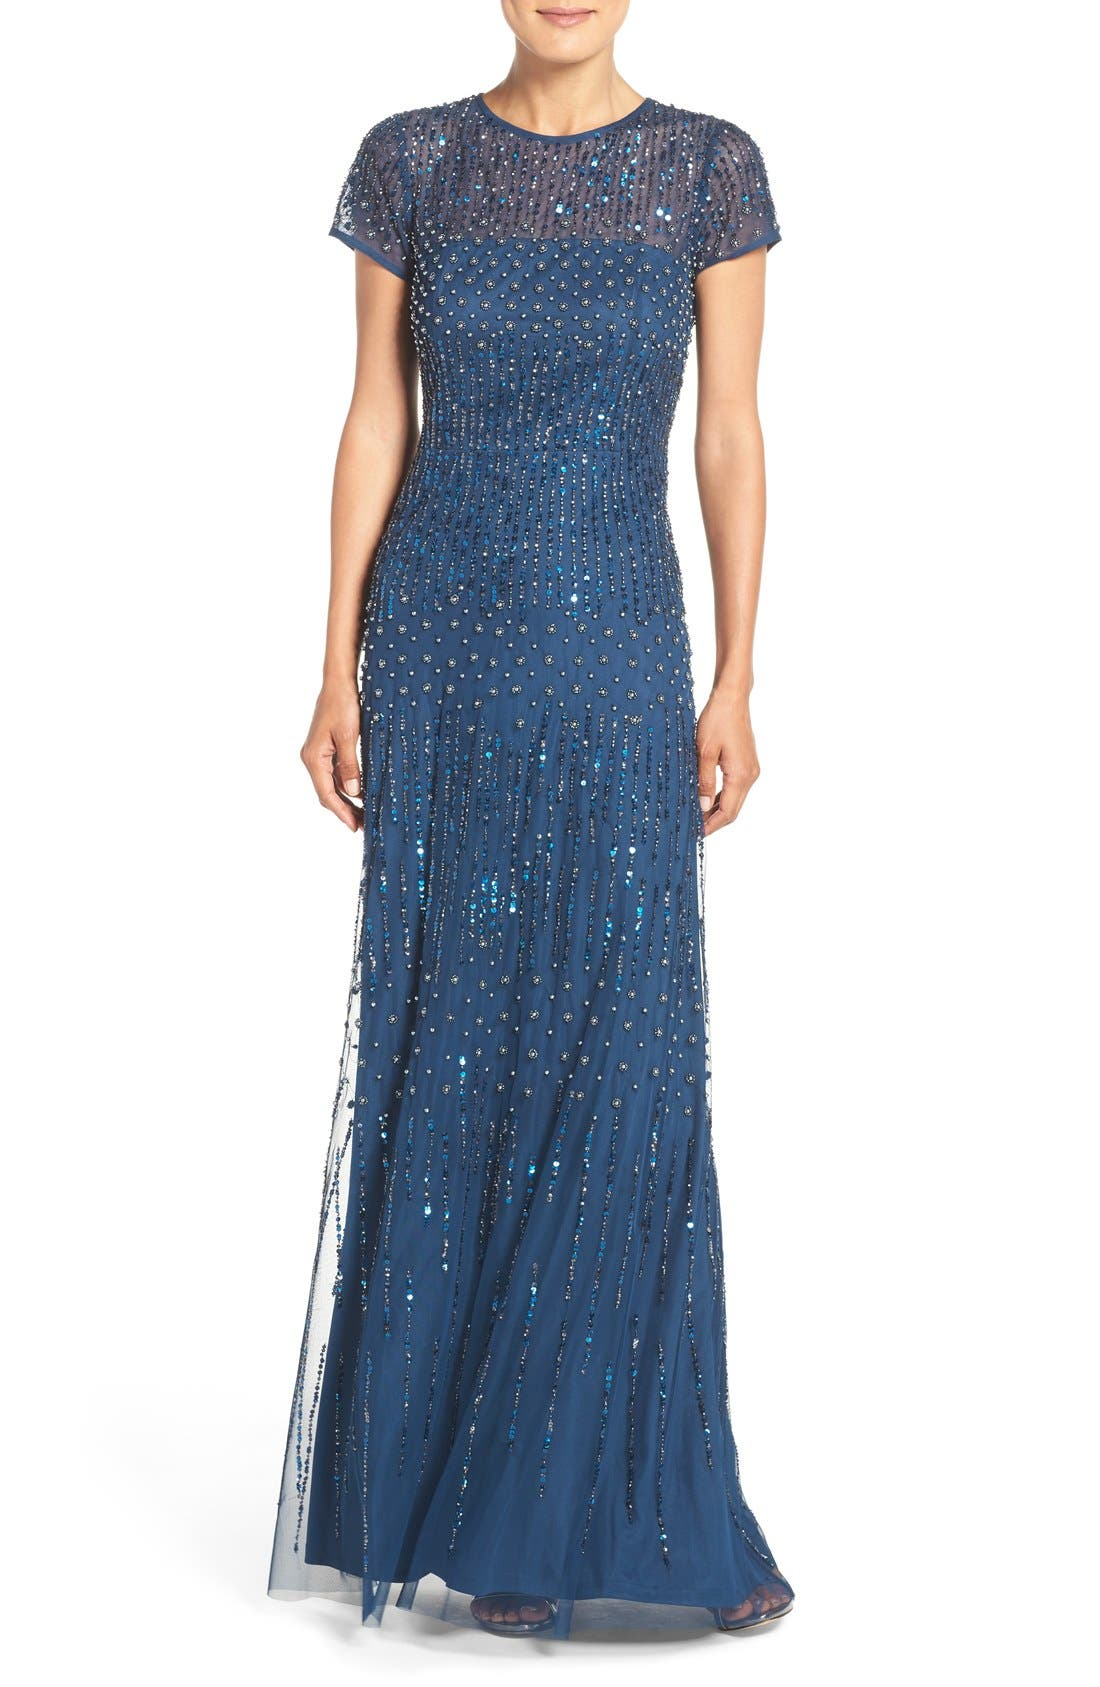 Alternate Image 1 Selected - Adrianna Papell Embellished Mesh Gown (Regular & Petite)